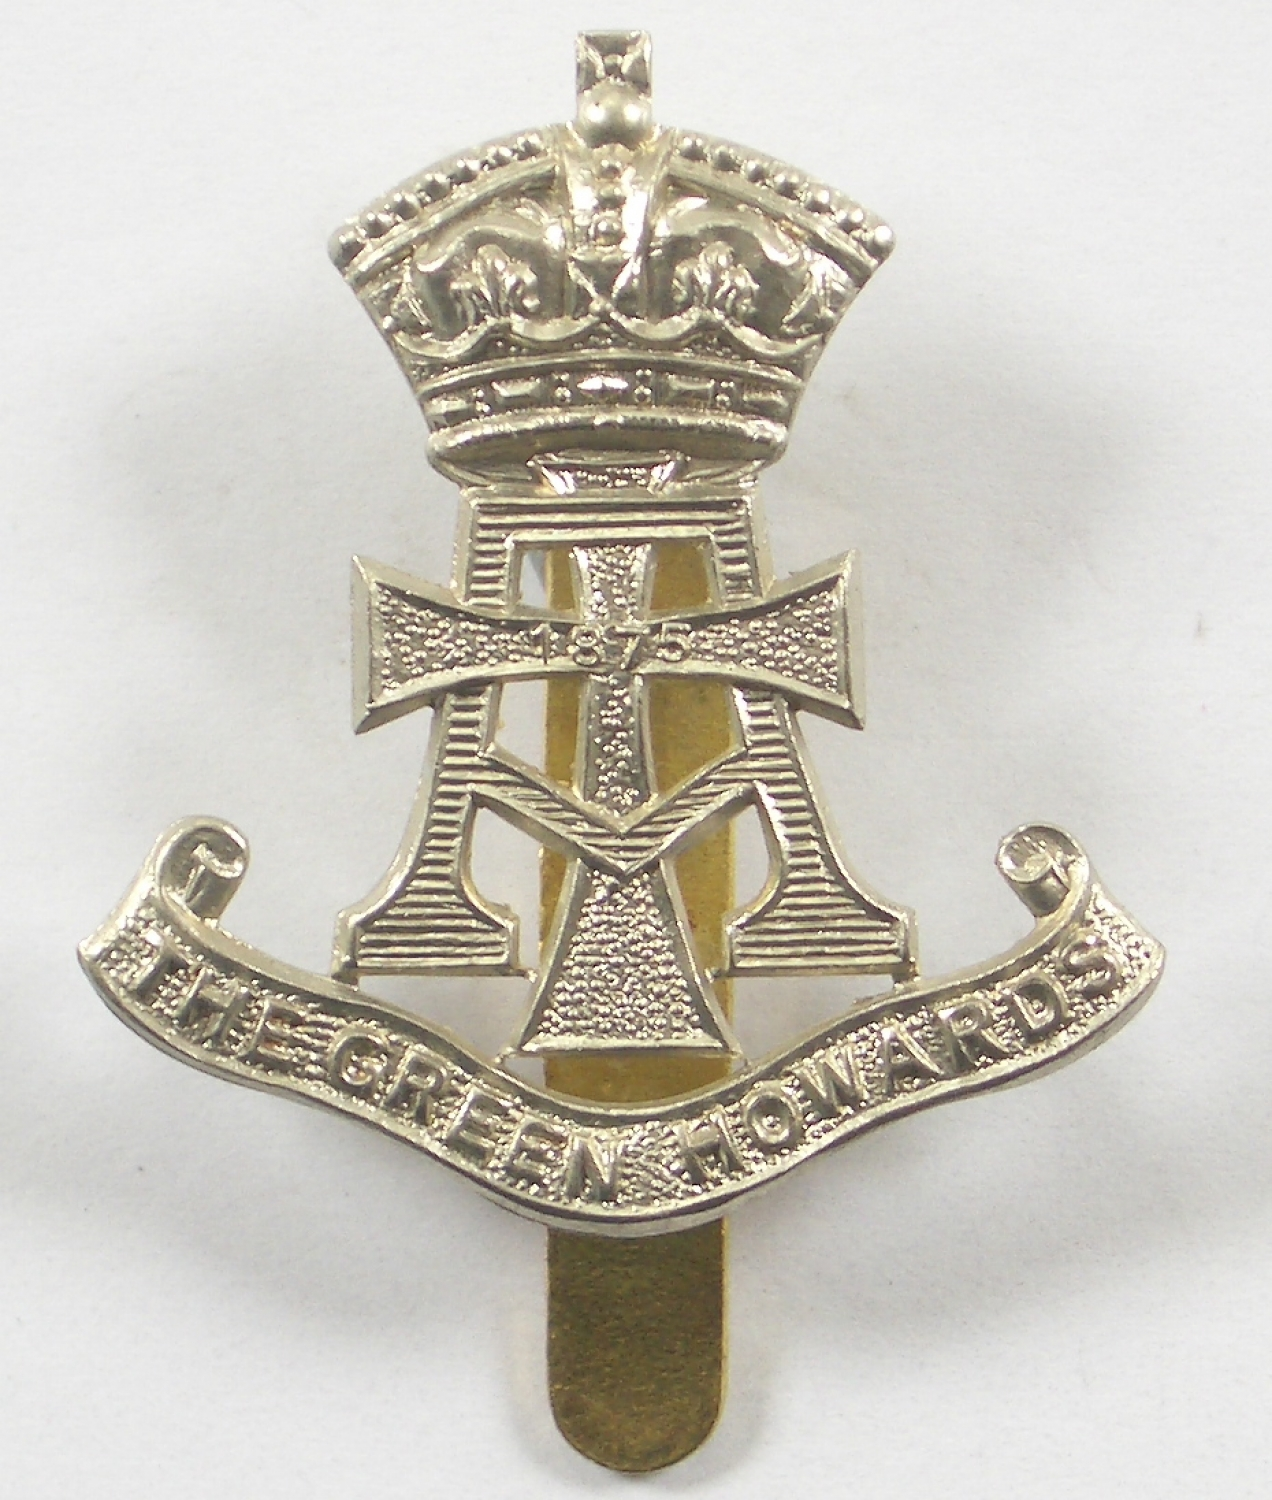 Green Howards cap badge by Firmin